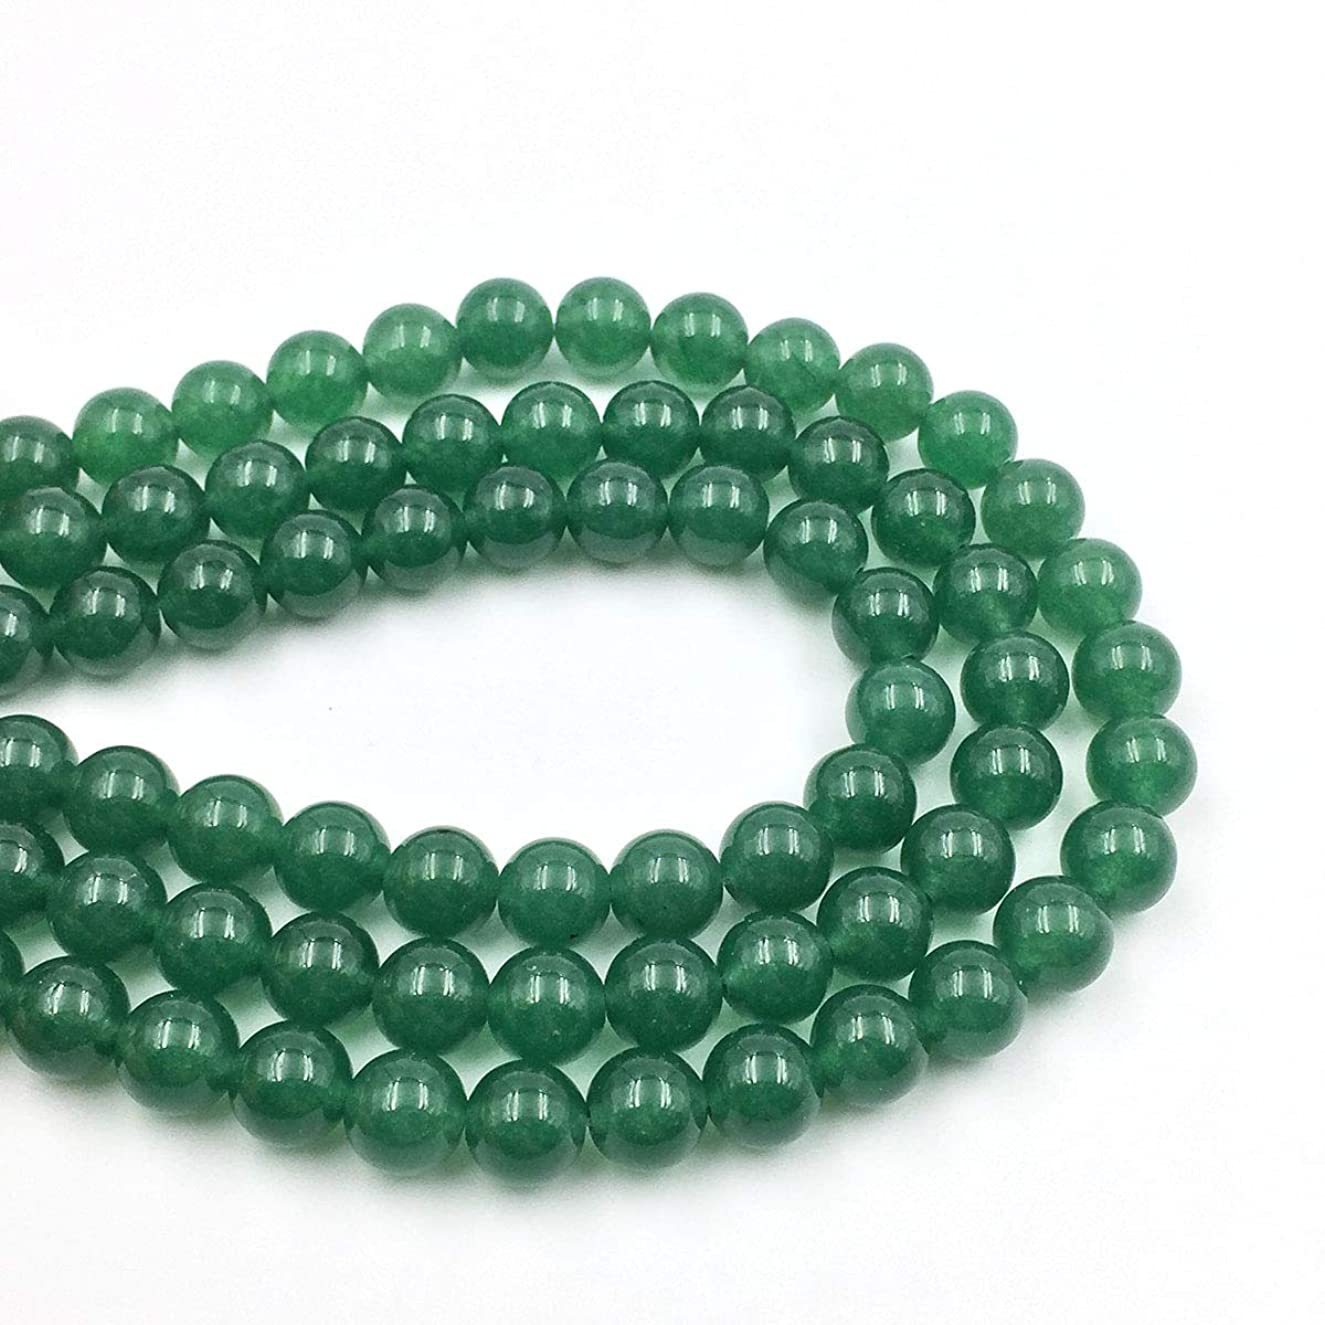 favoramulet Green Aventurine 8mm Round Loose Beads Strand for Jewelry Making 14